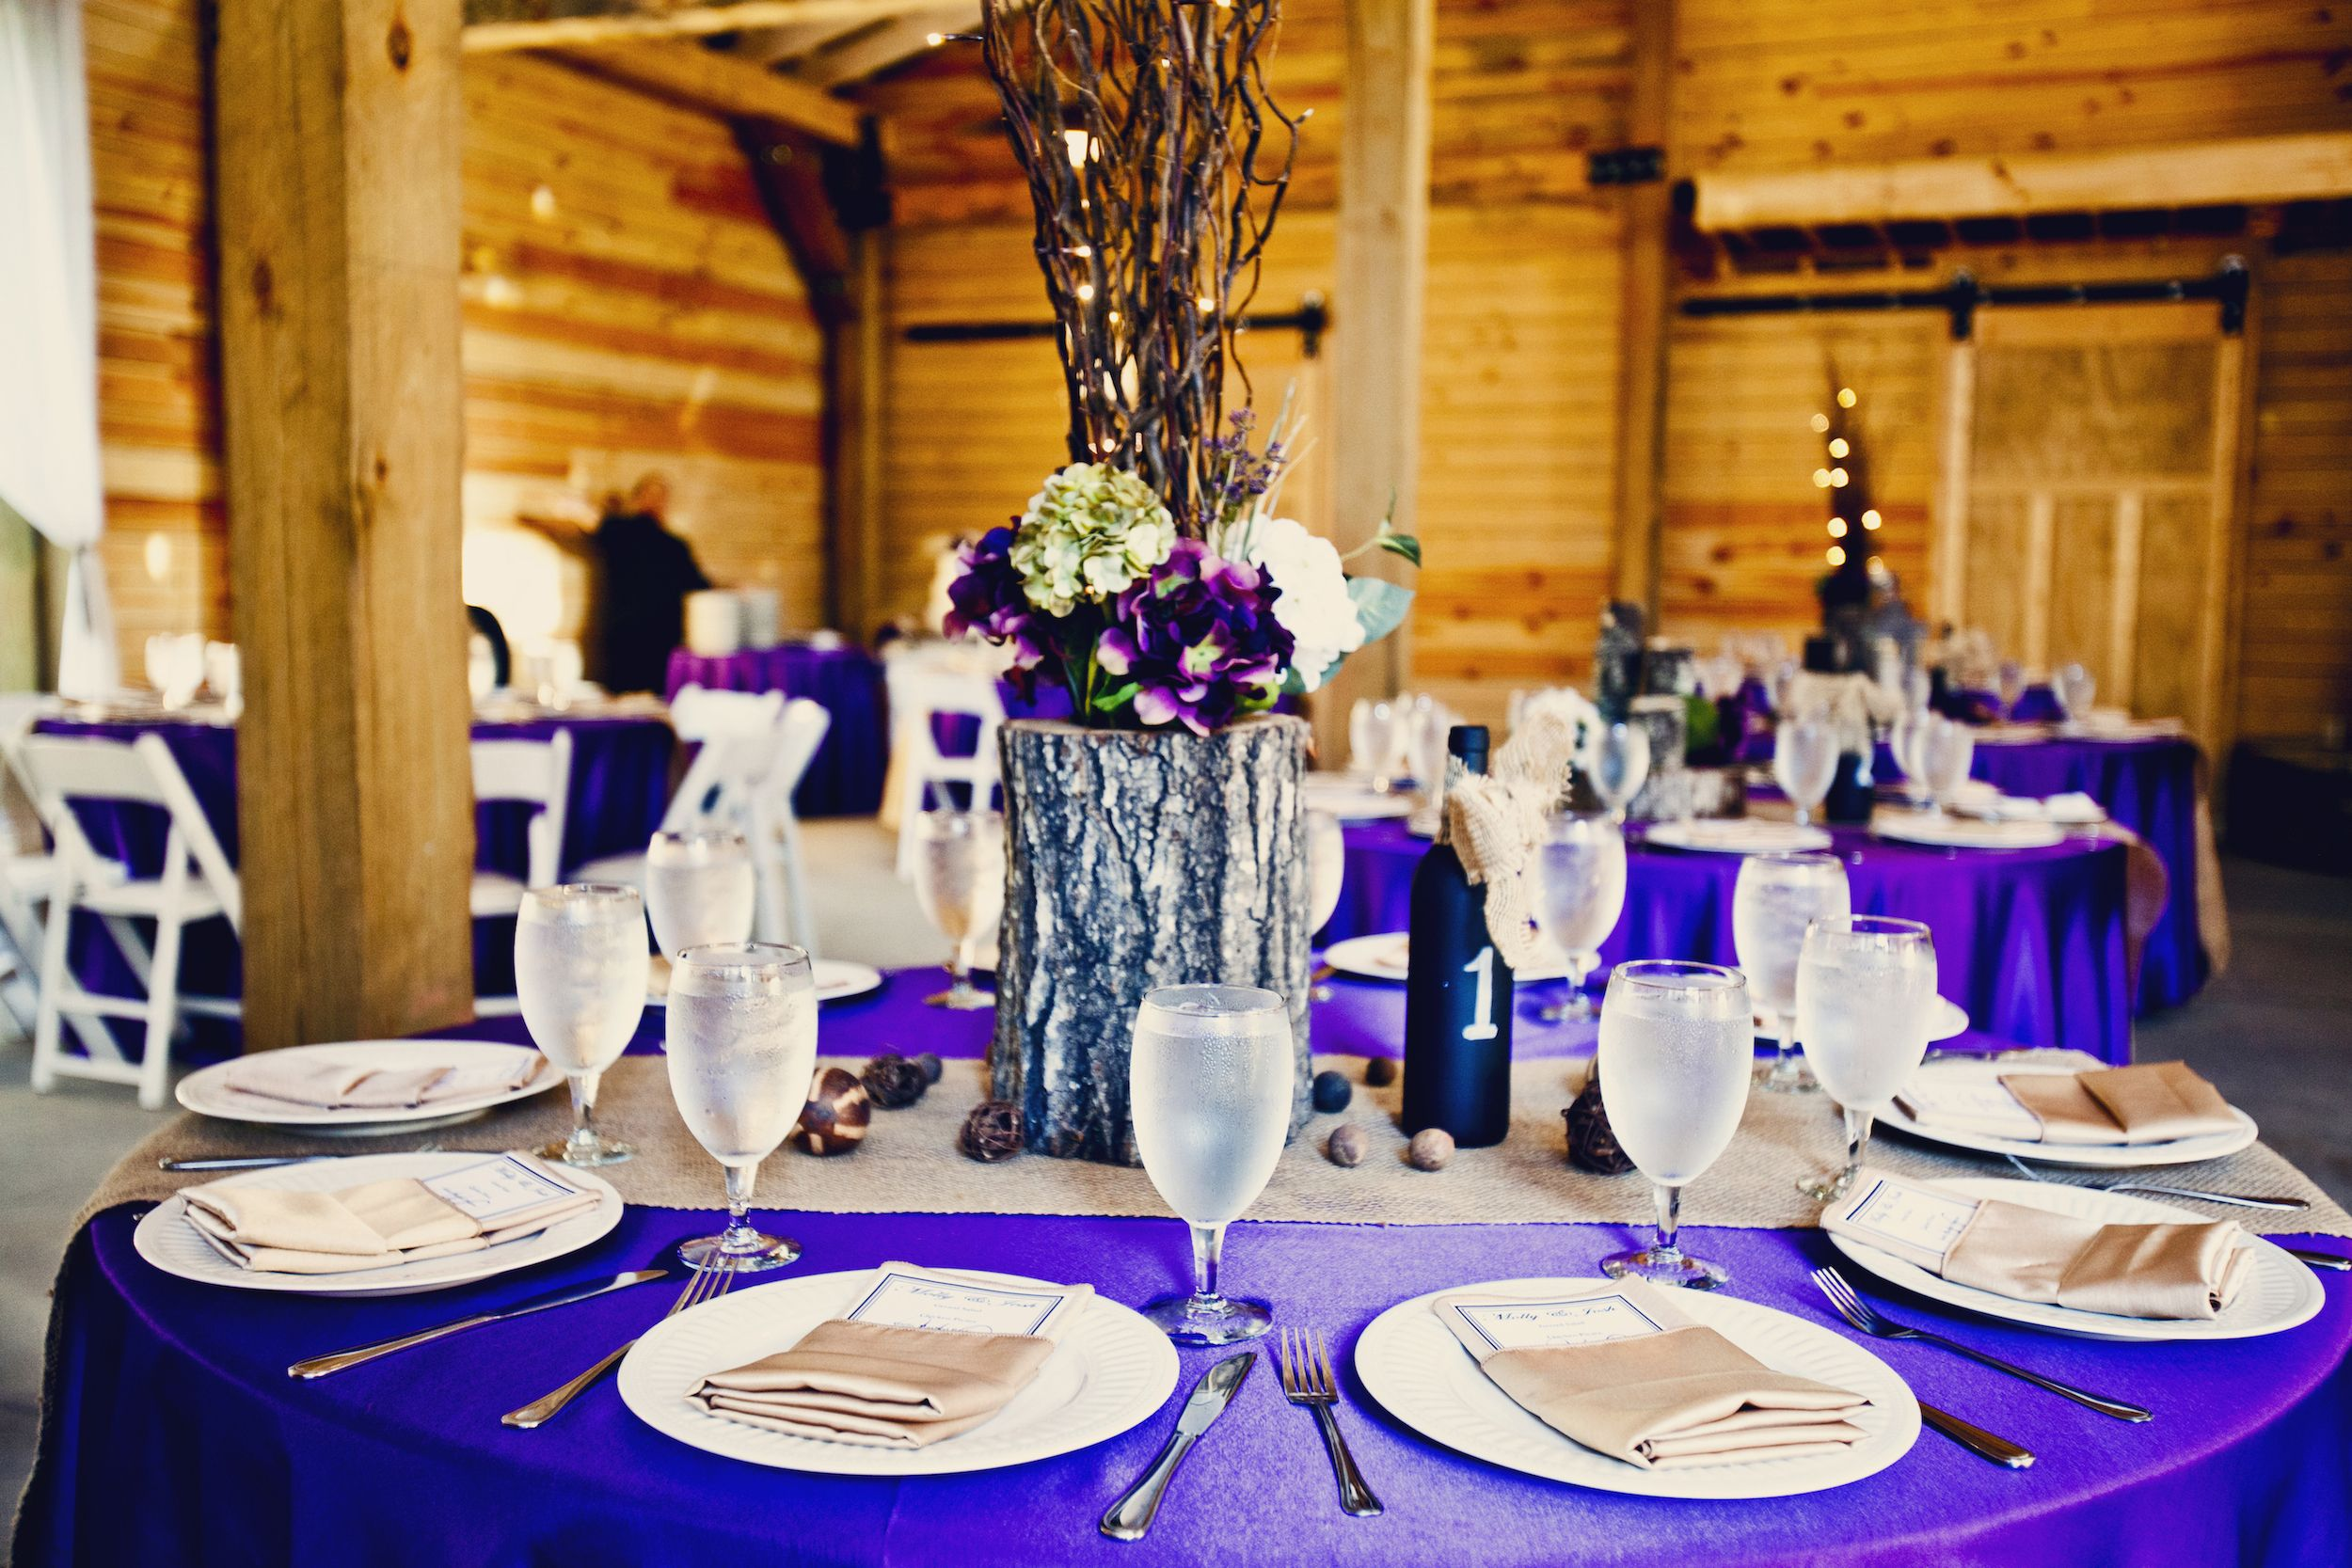 Purple And Burlap Wedding Decor With Rustic Wood Centerpieces The